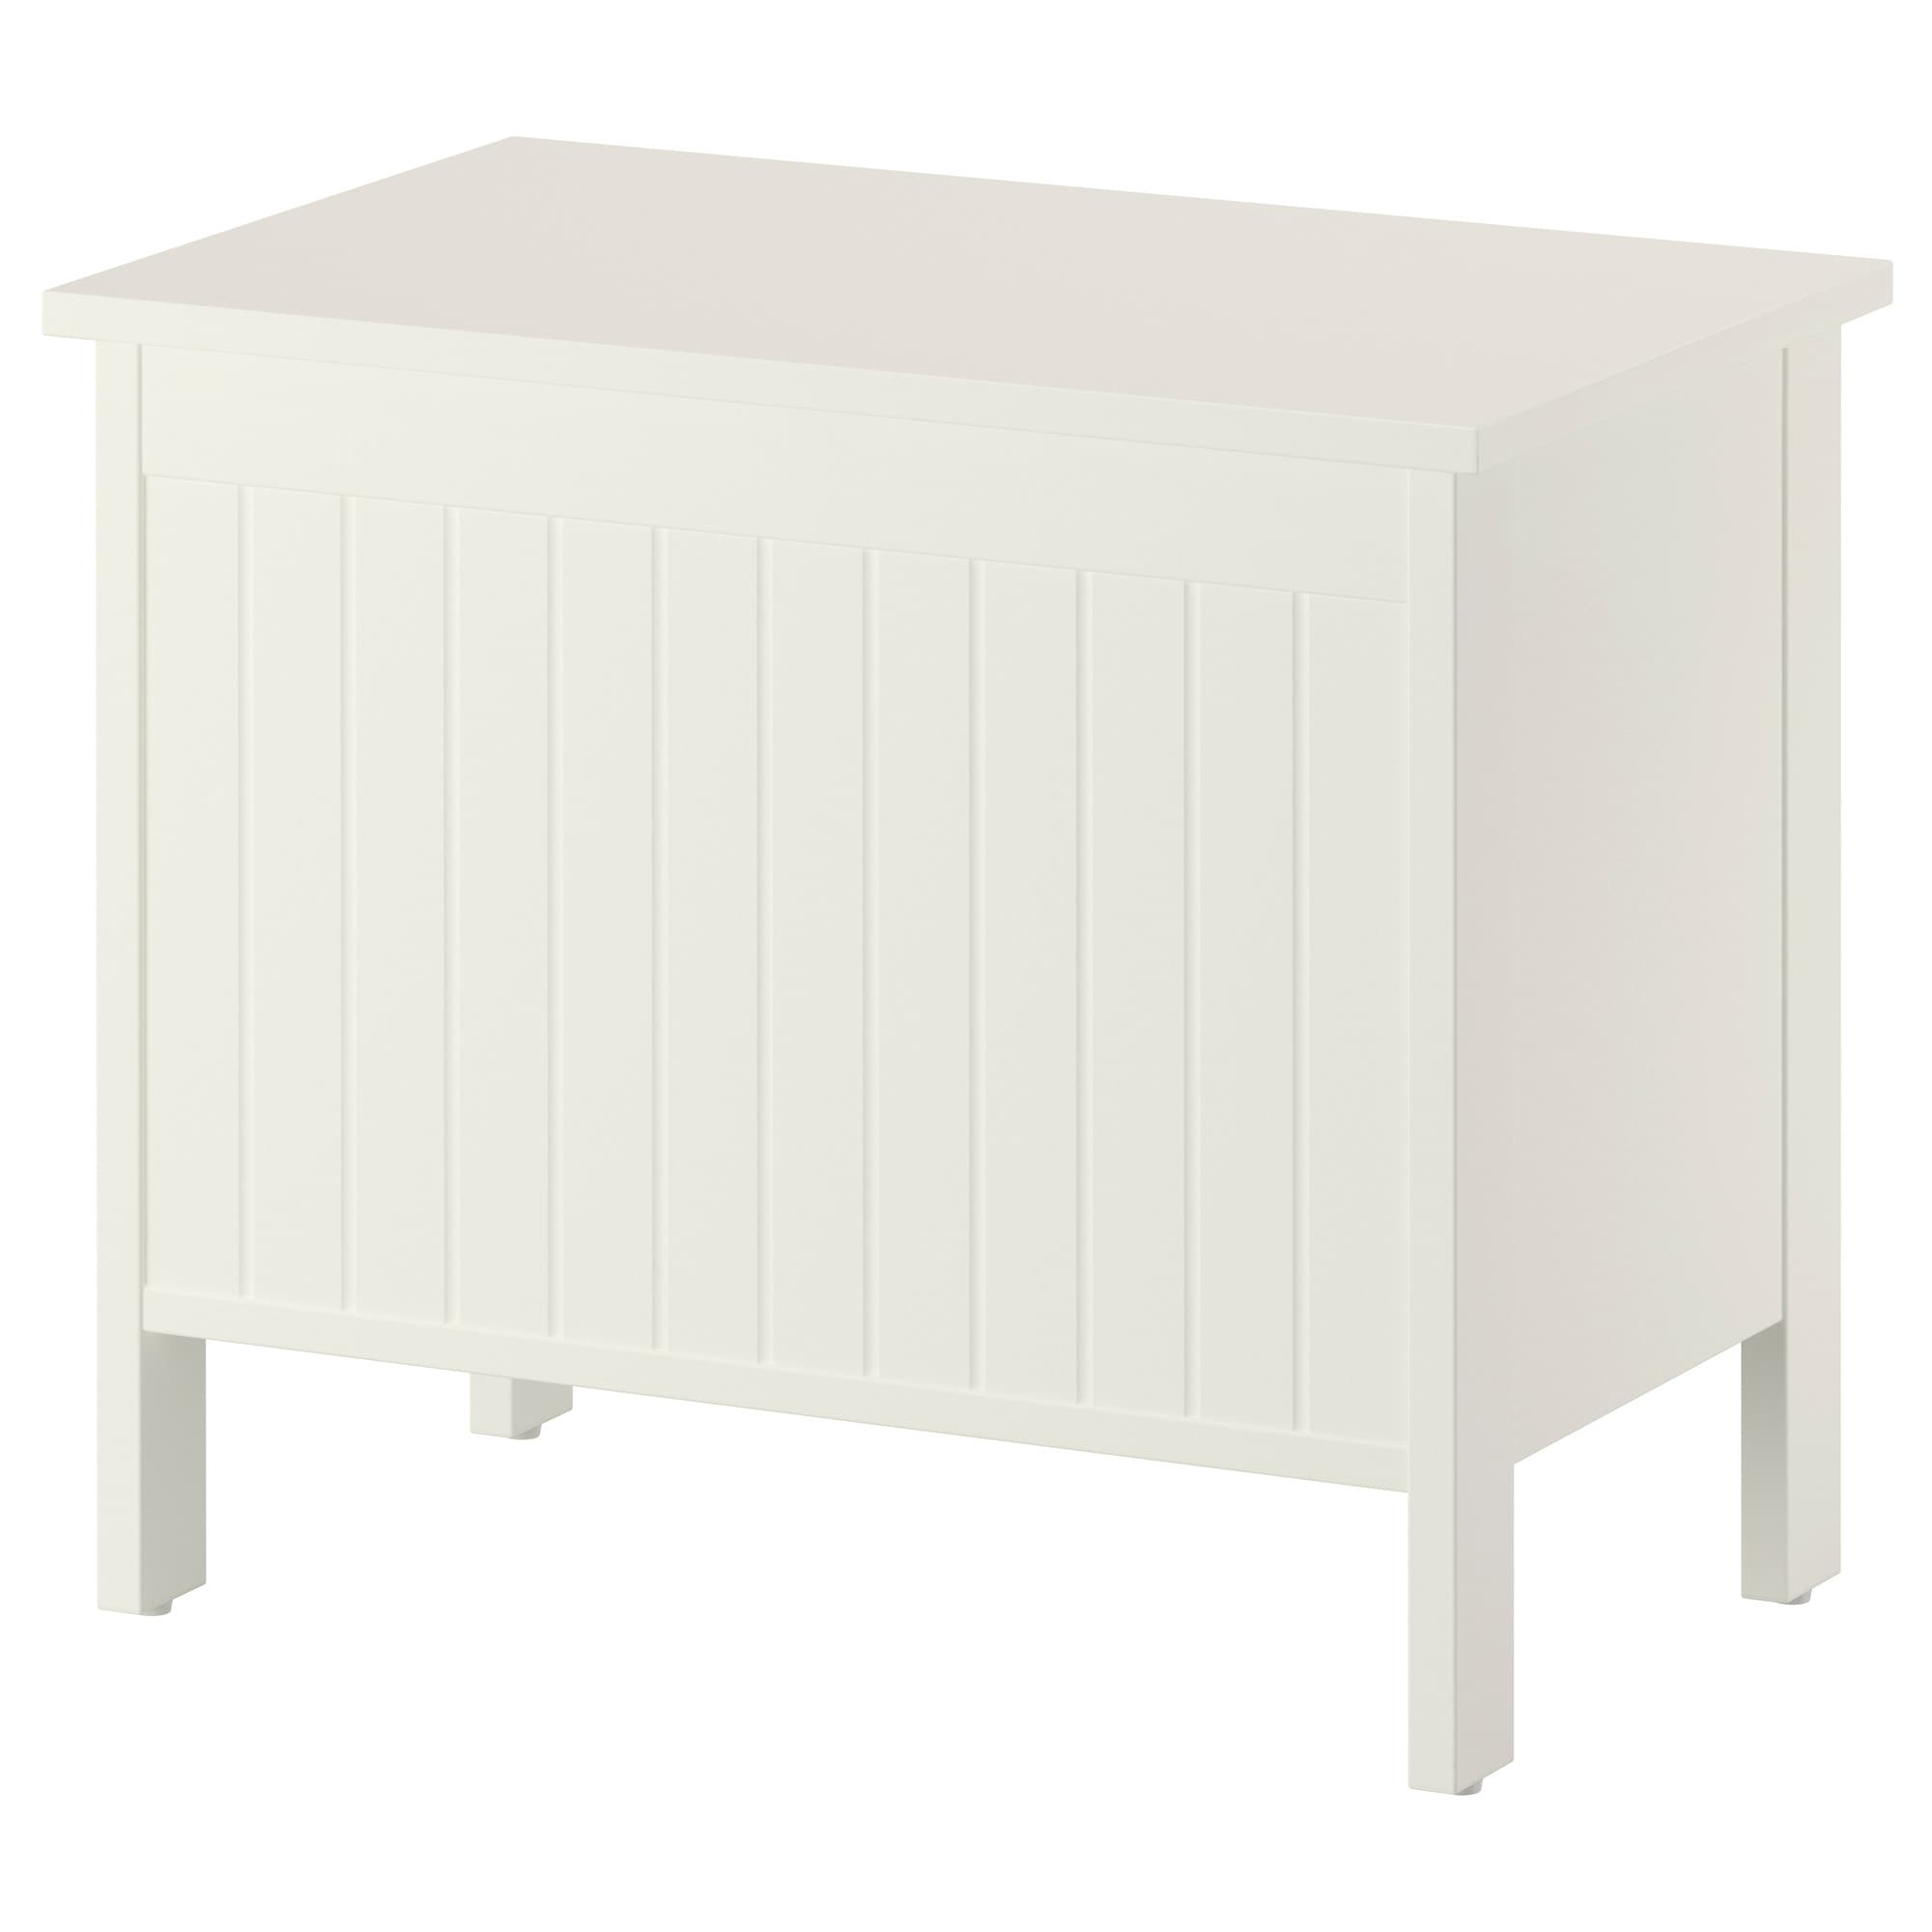 Storage Bench Silvern White in proportions 2000 X 2000